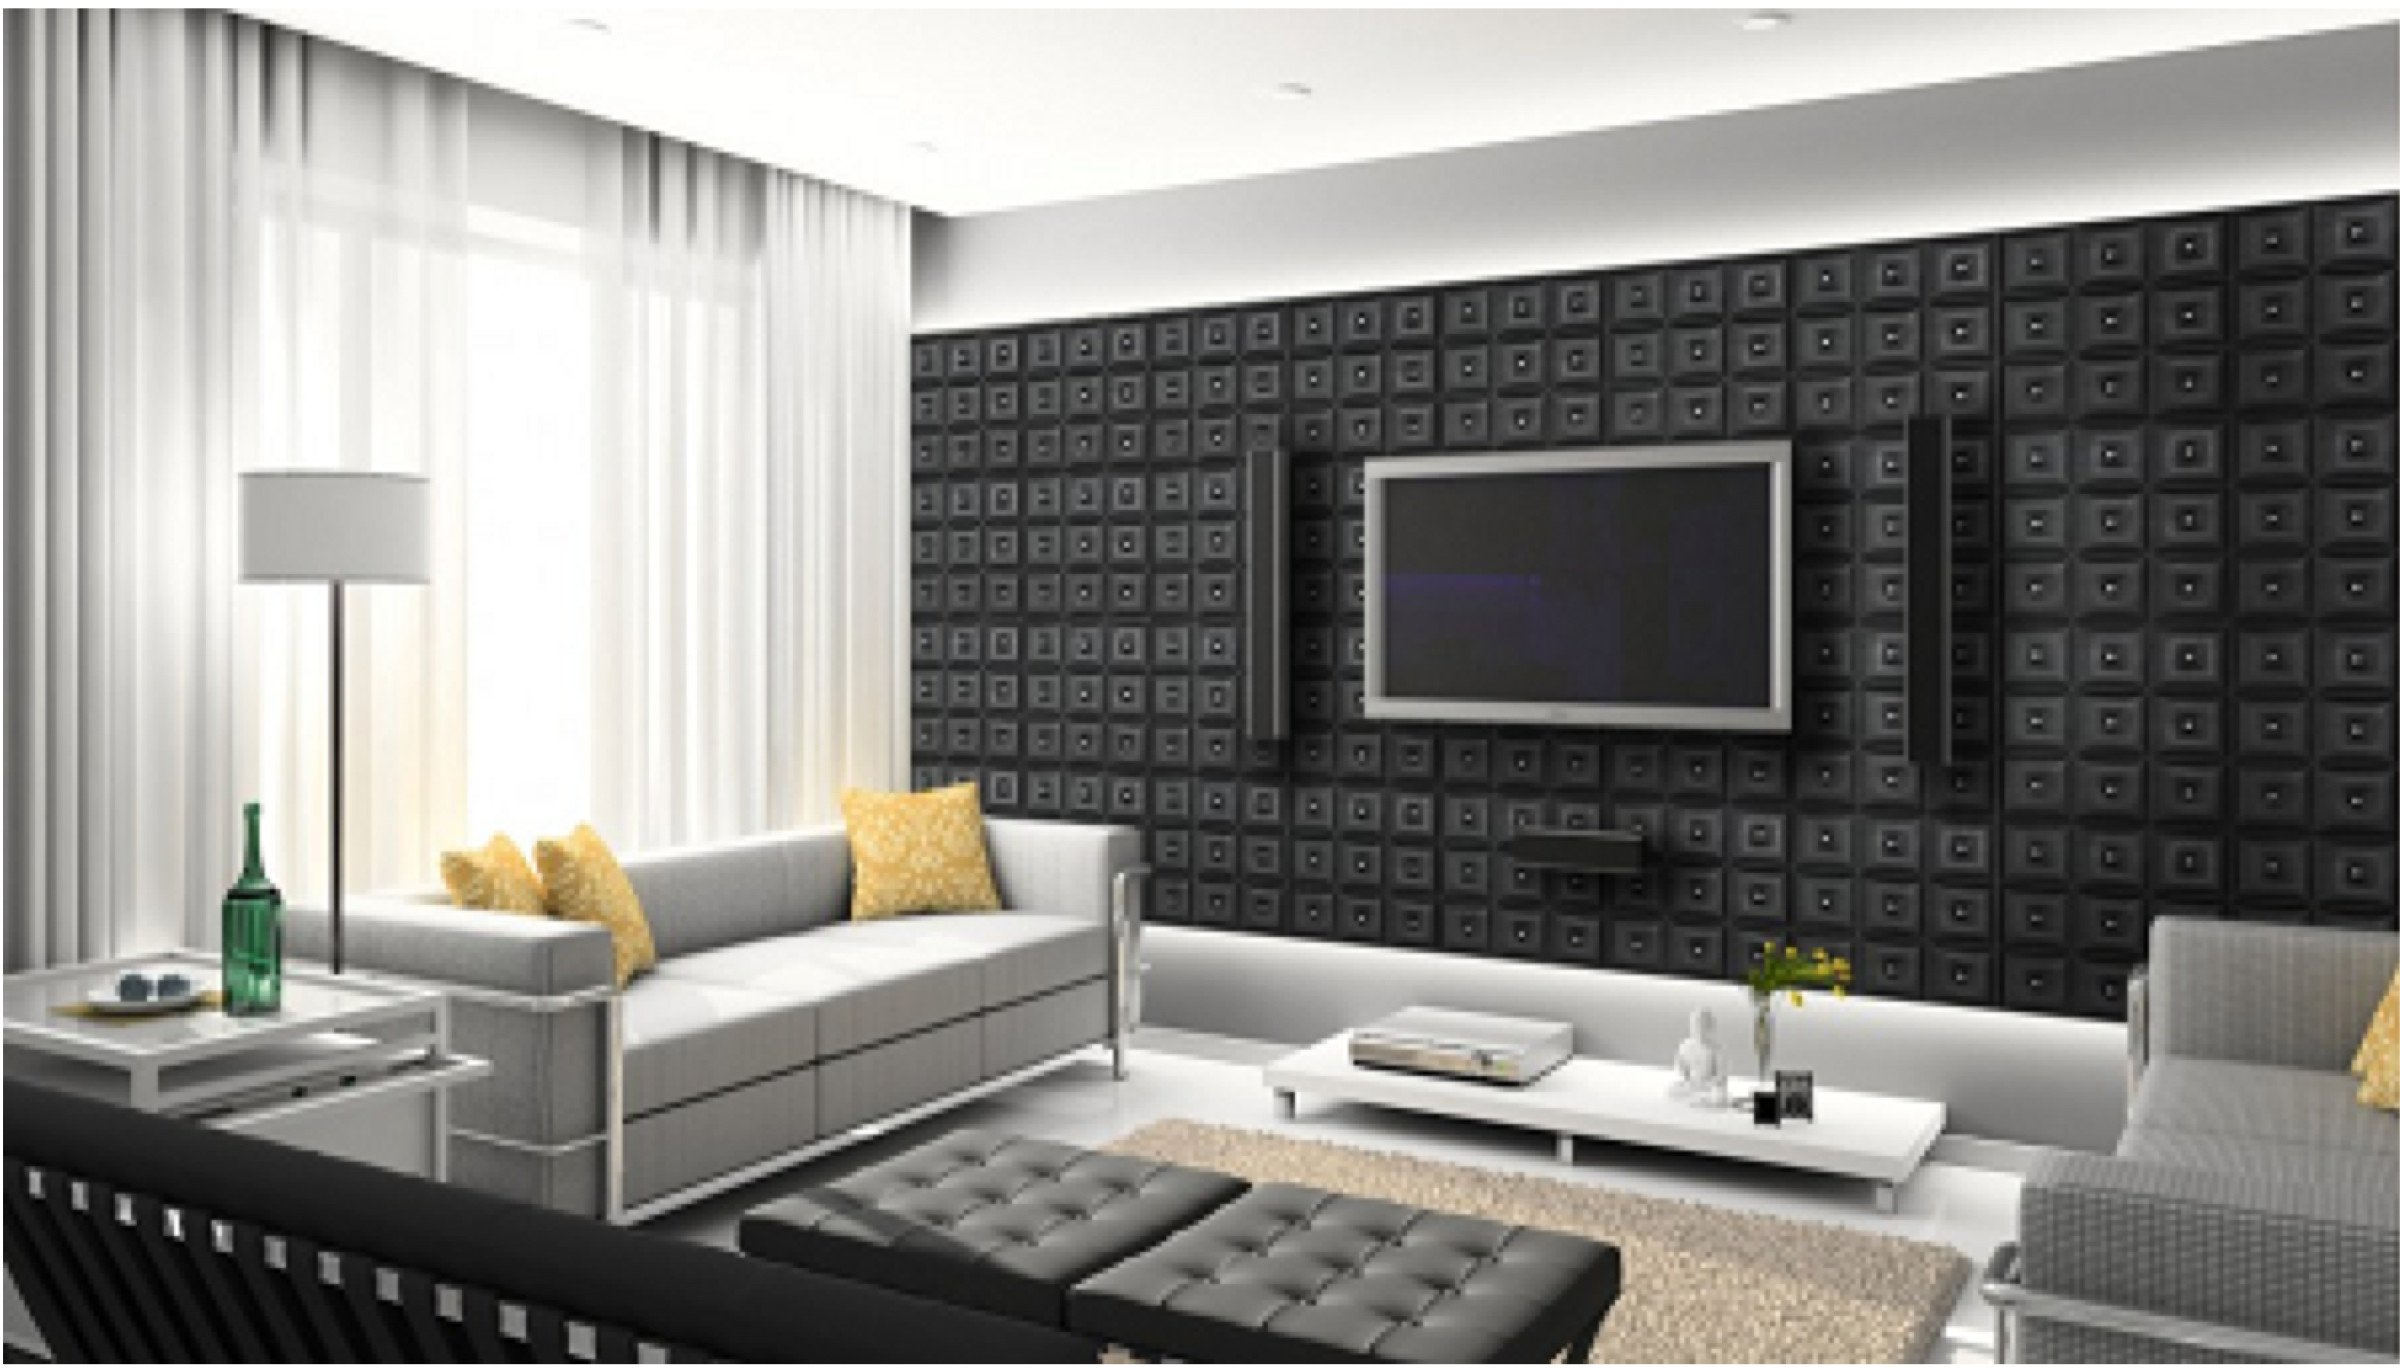 Stunning Faux Leather Wall Panels Transform A Room From Drab